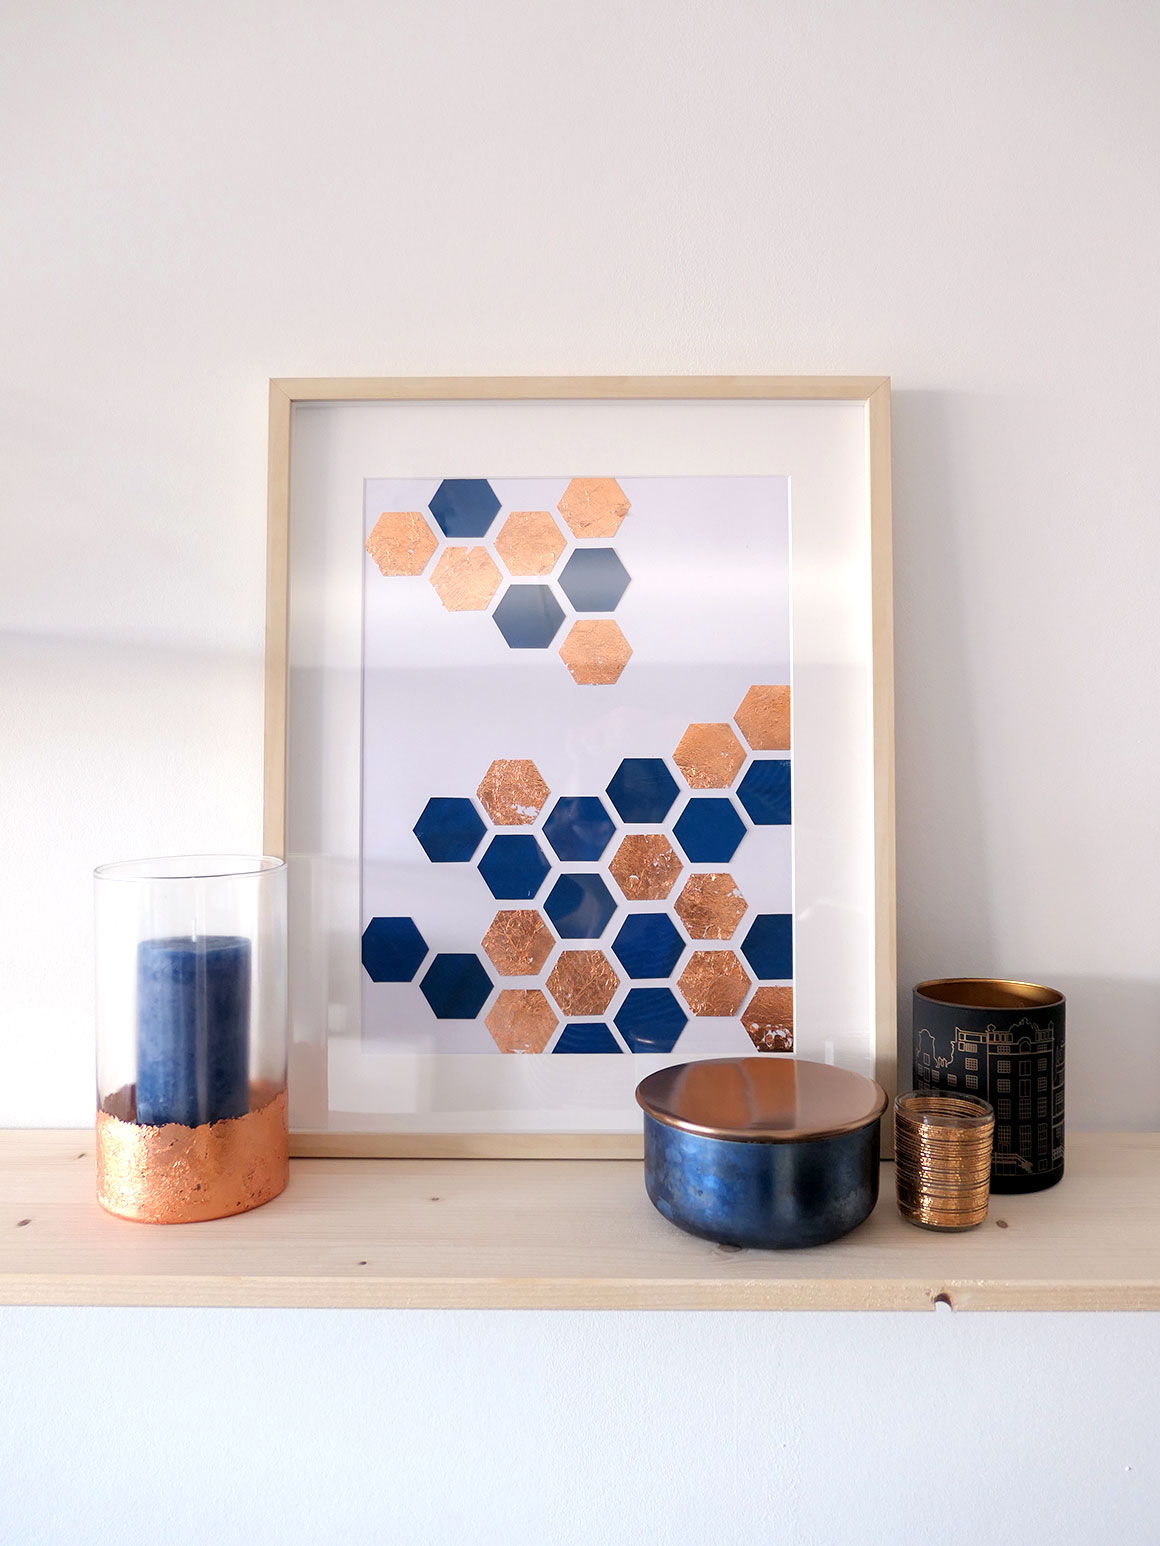 DIY: Hexagon art